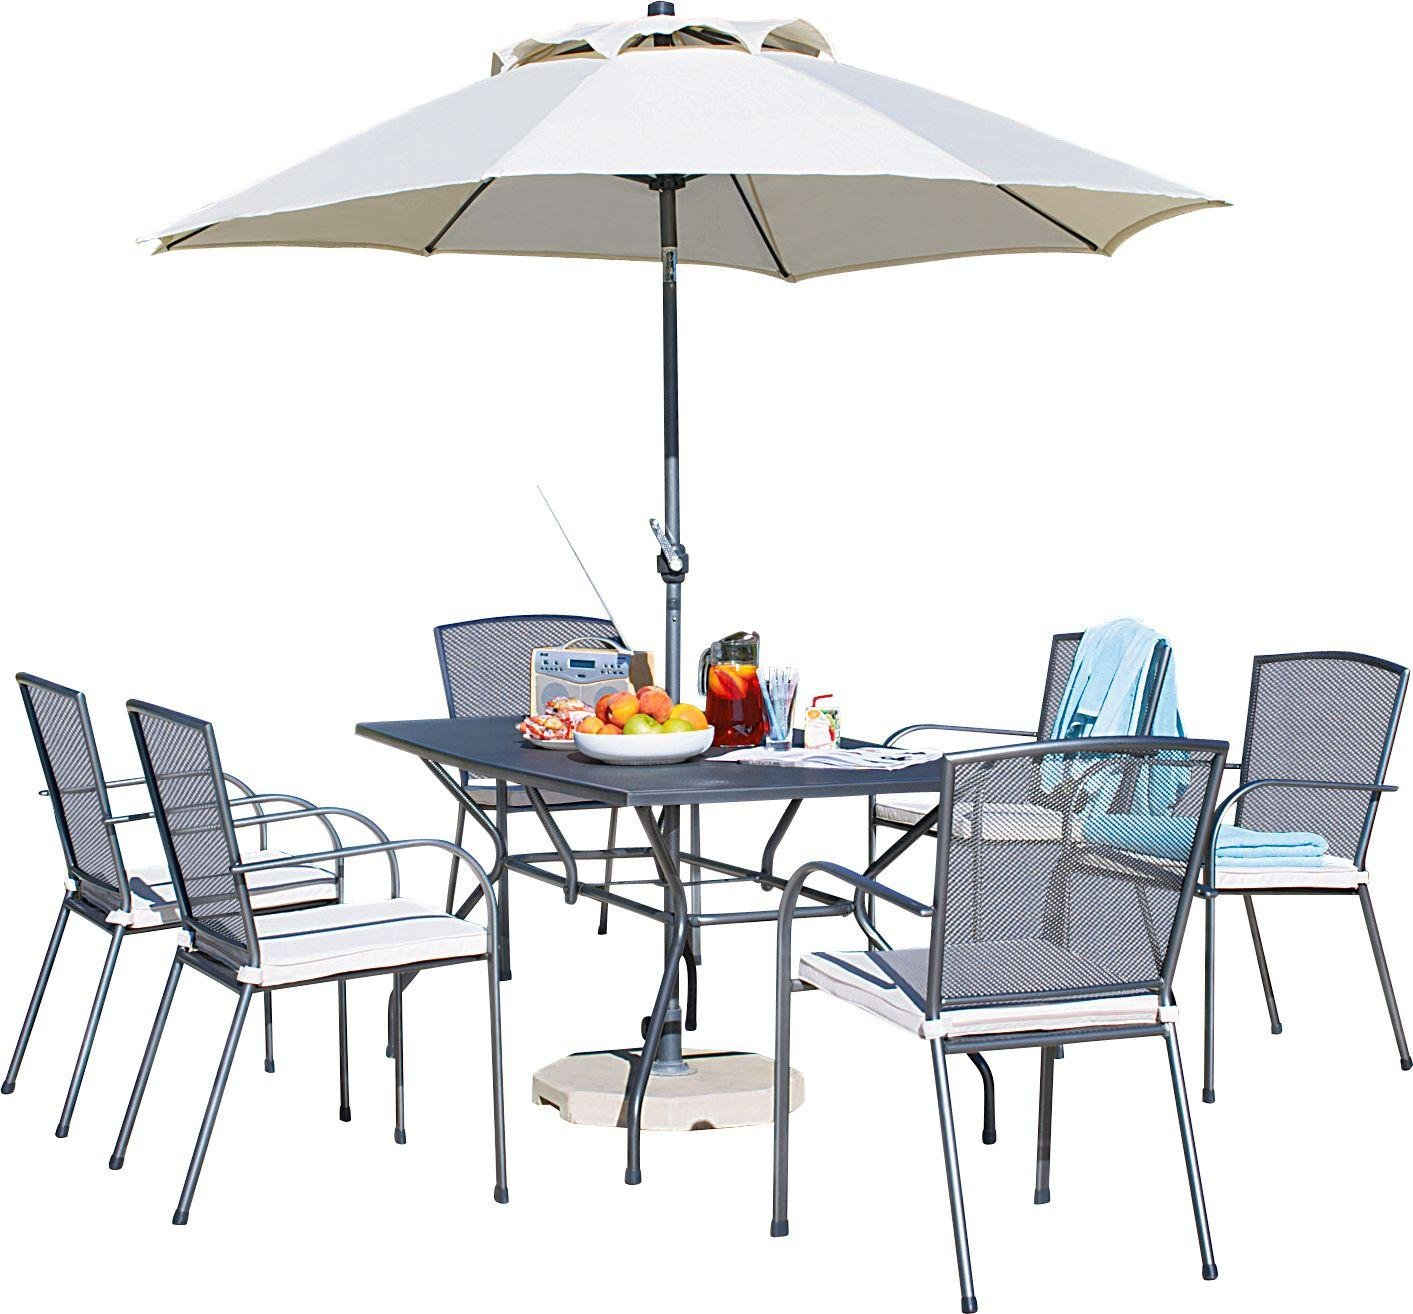 Garden Furniture 6 Seater buy collection miami 6 seater mesh patio furniture set at argos.co